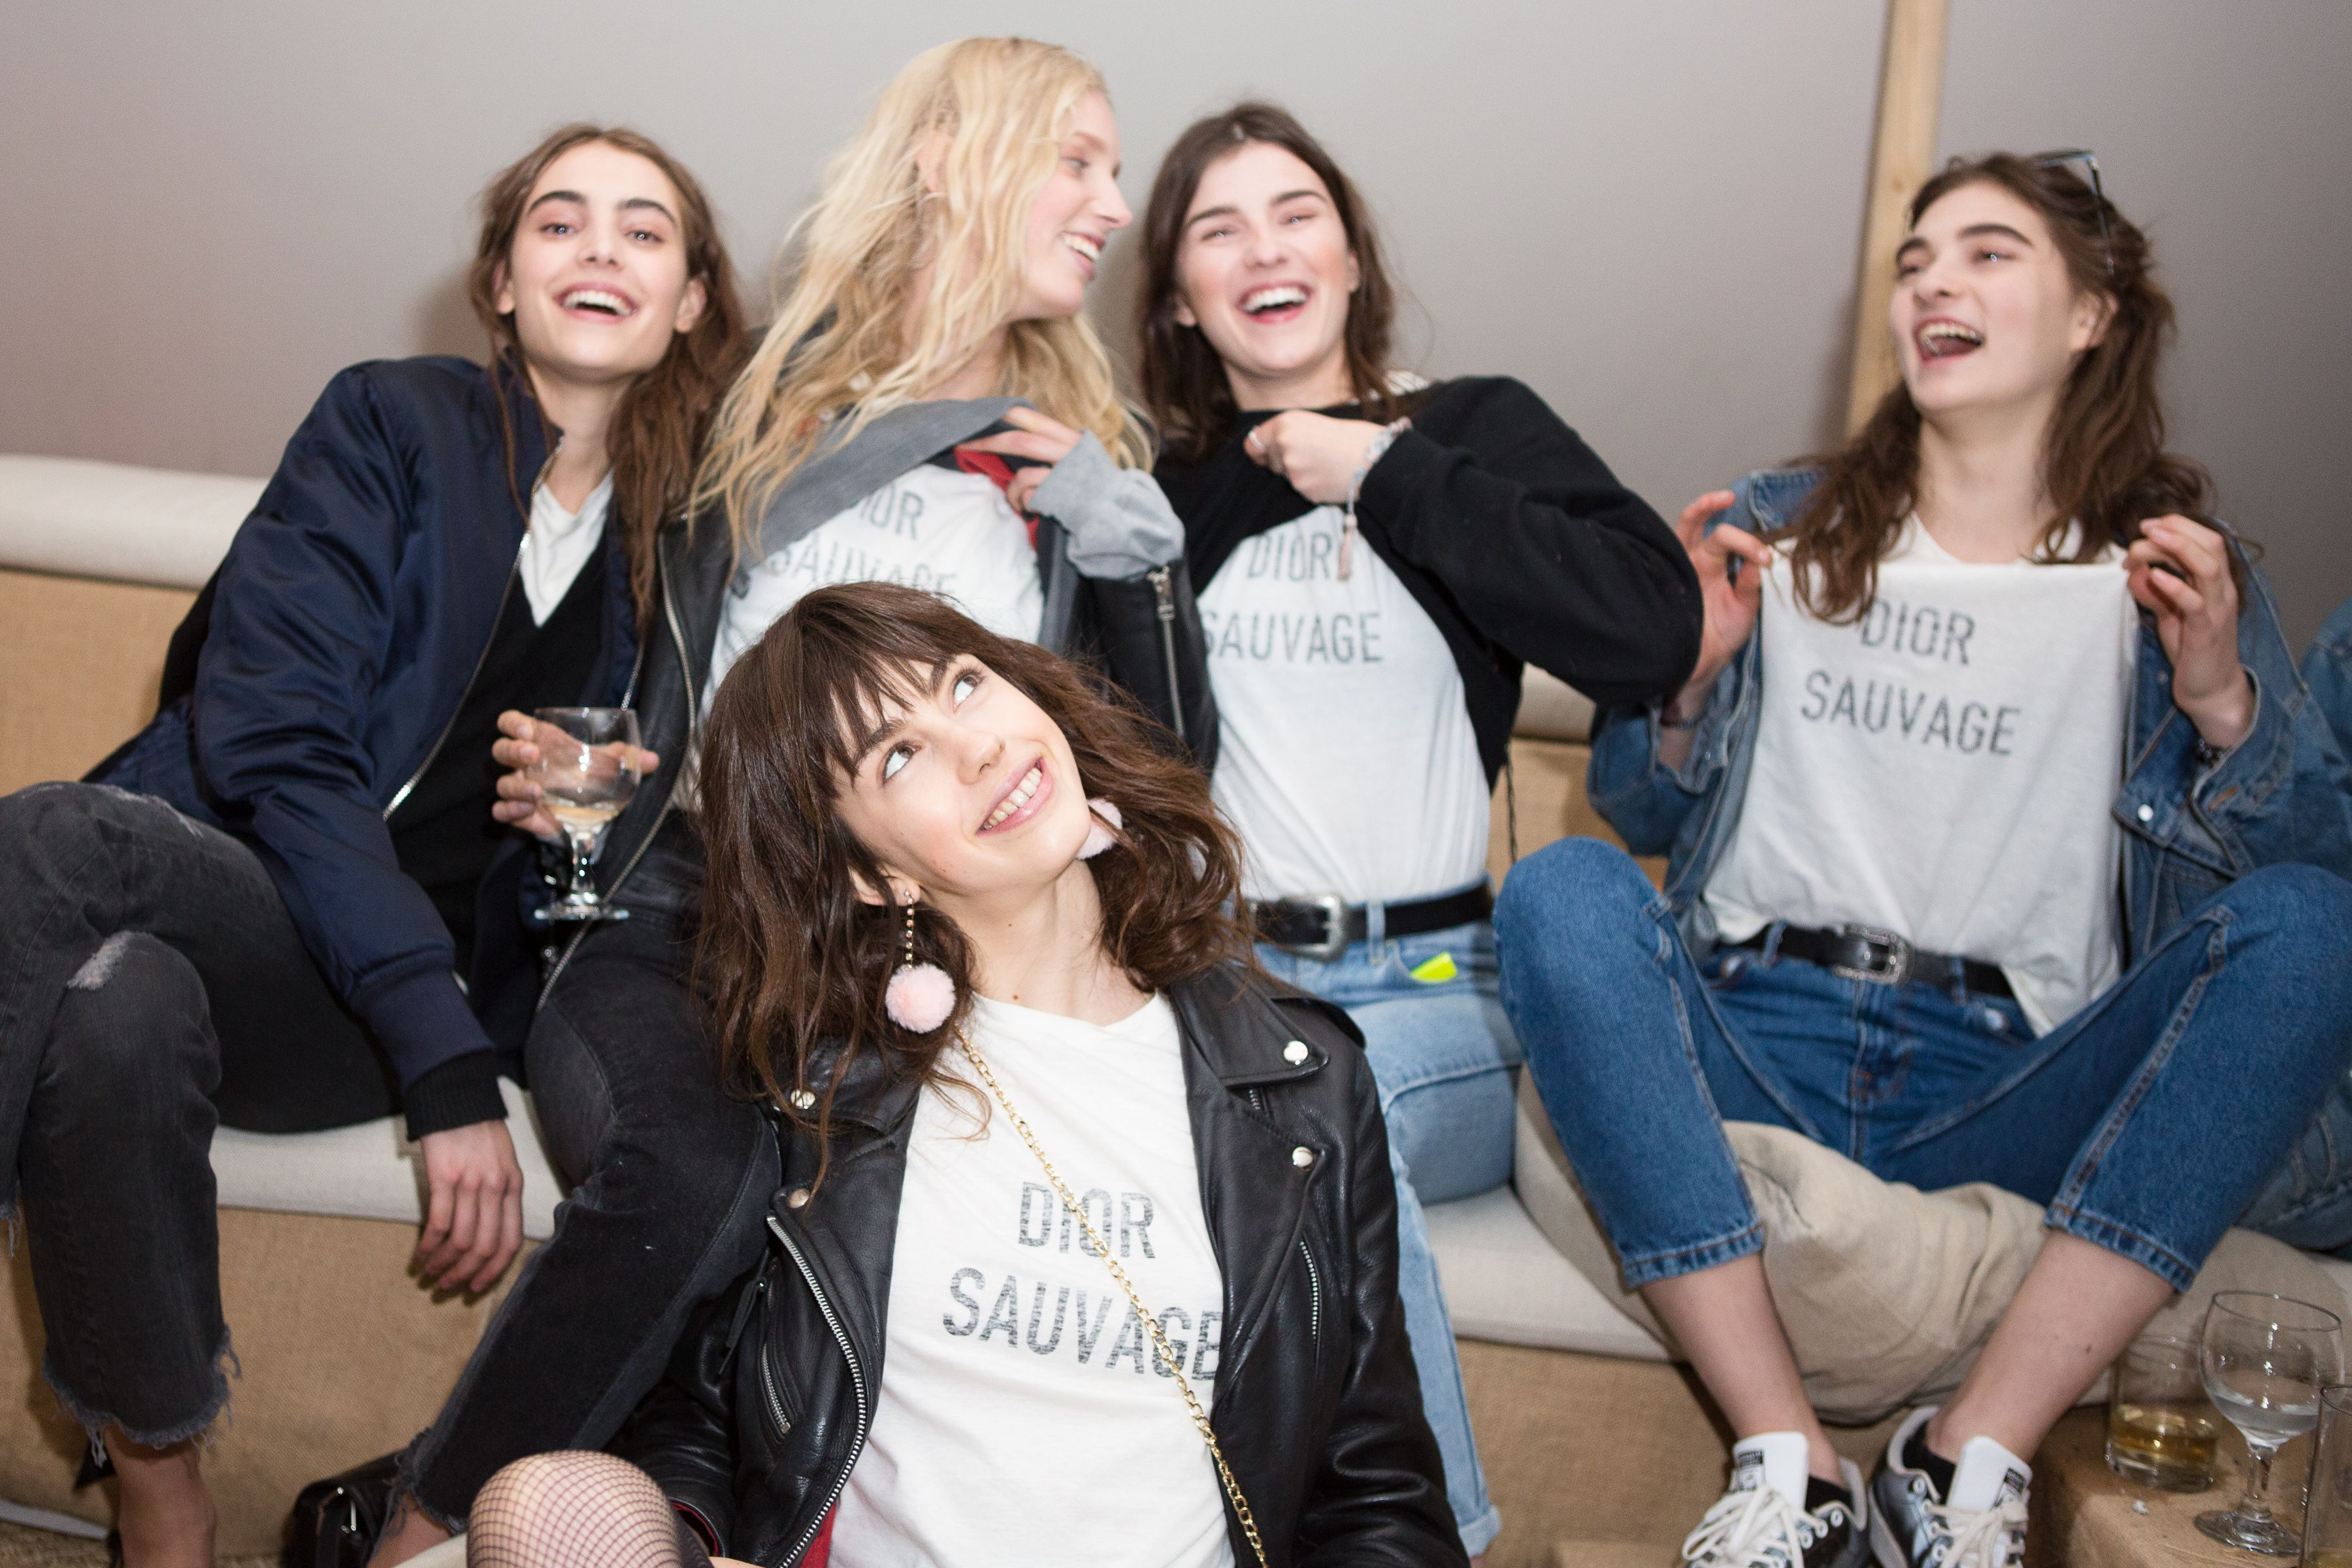 Models backstageDior Cruise Collection 2018 show, Los Angeles, USA - 11 May 2017